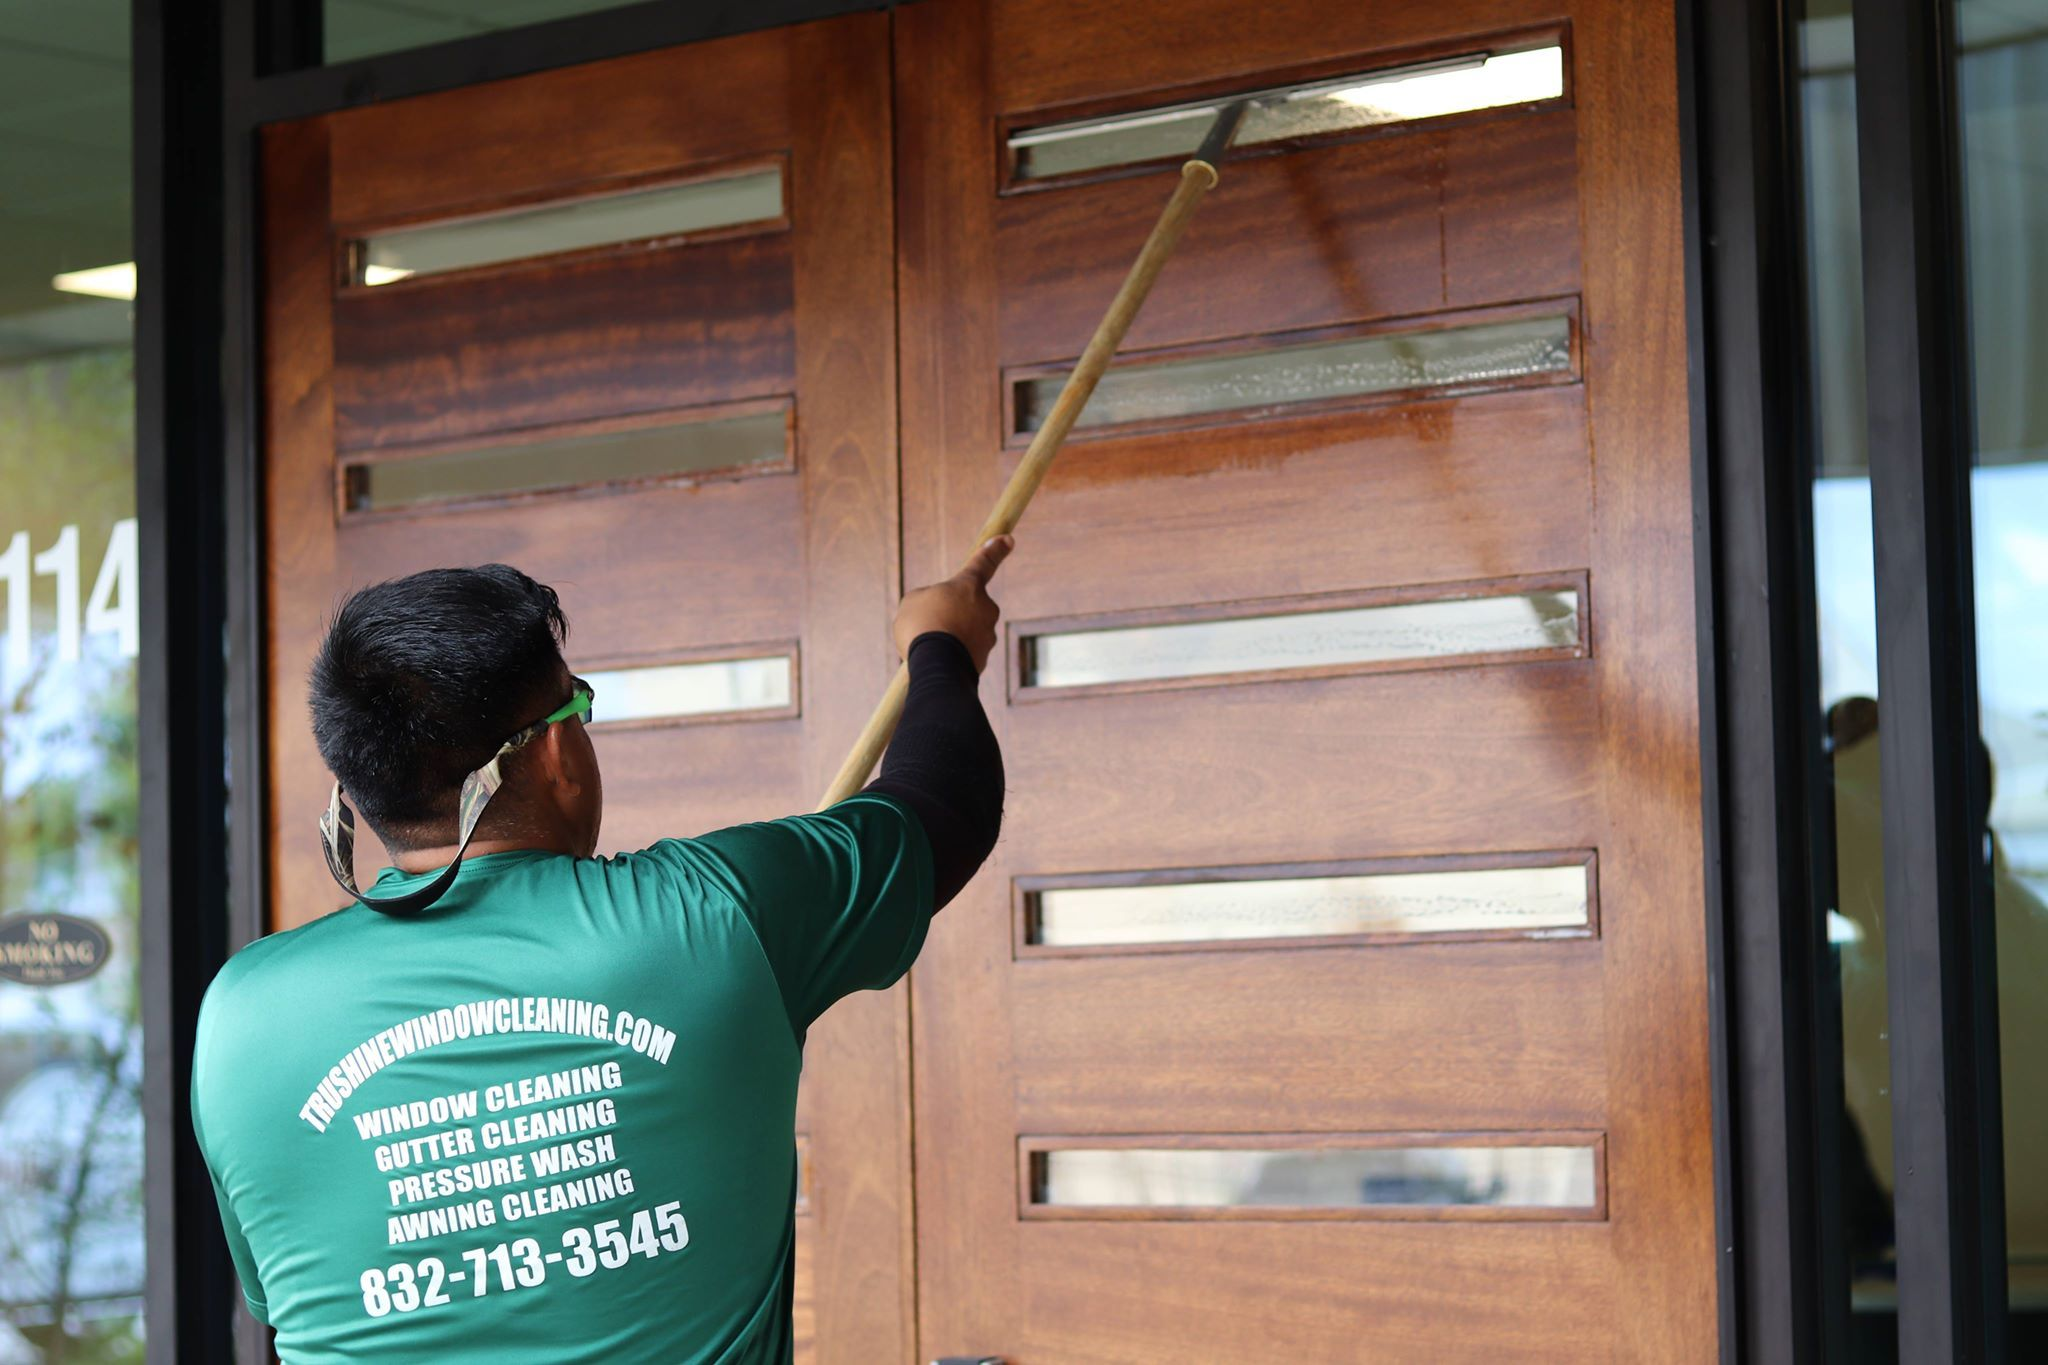 Houston Window Cleaning Is A One Stop Window Cleaning Brand In Houston With A Large Customer Base And A Window Cleaning Services Window Cleaner Washing Windows